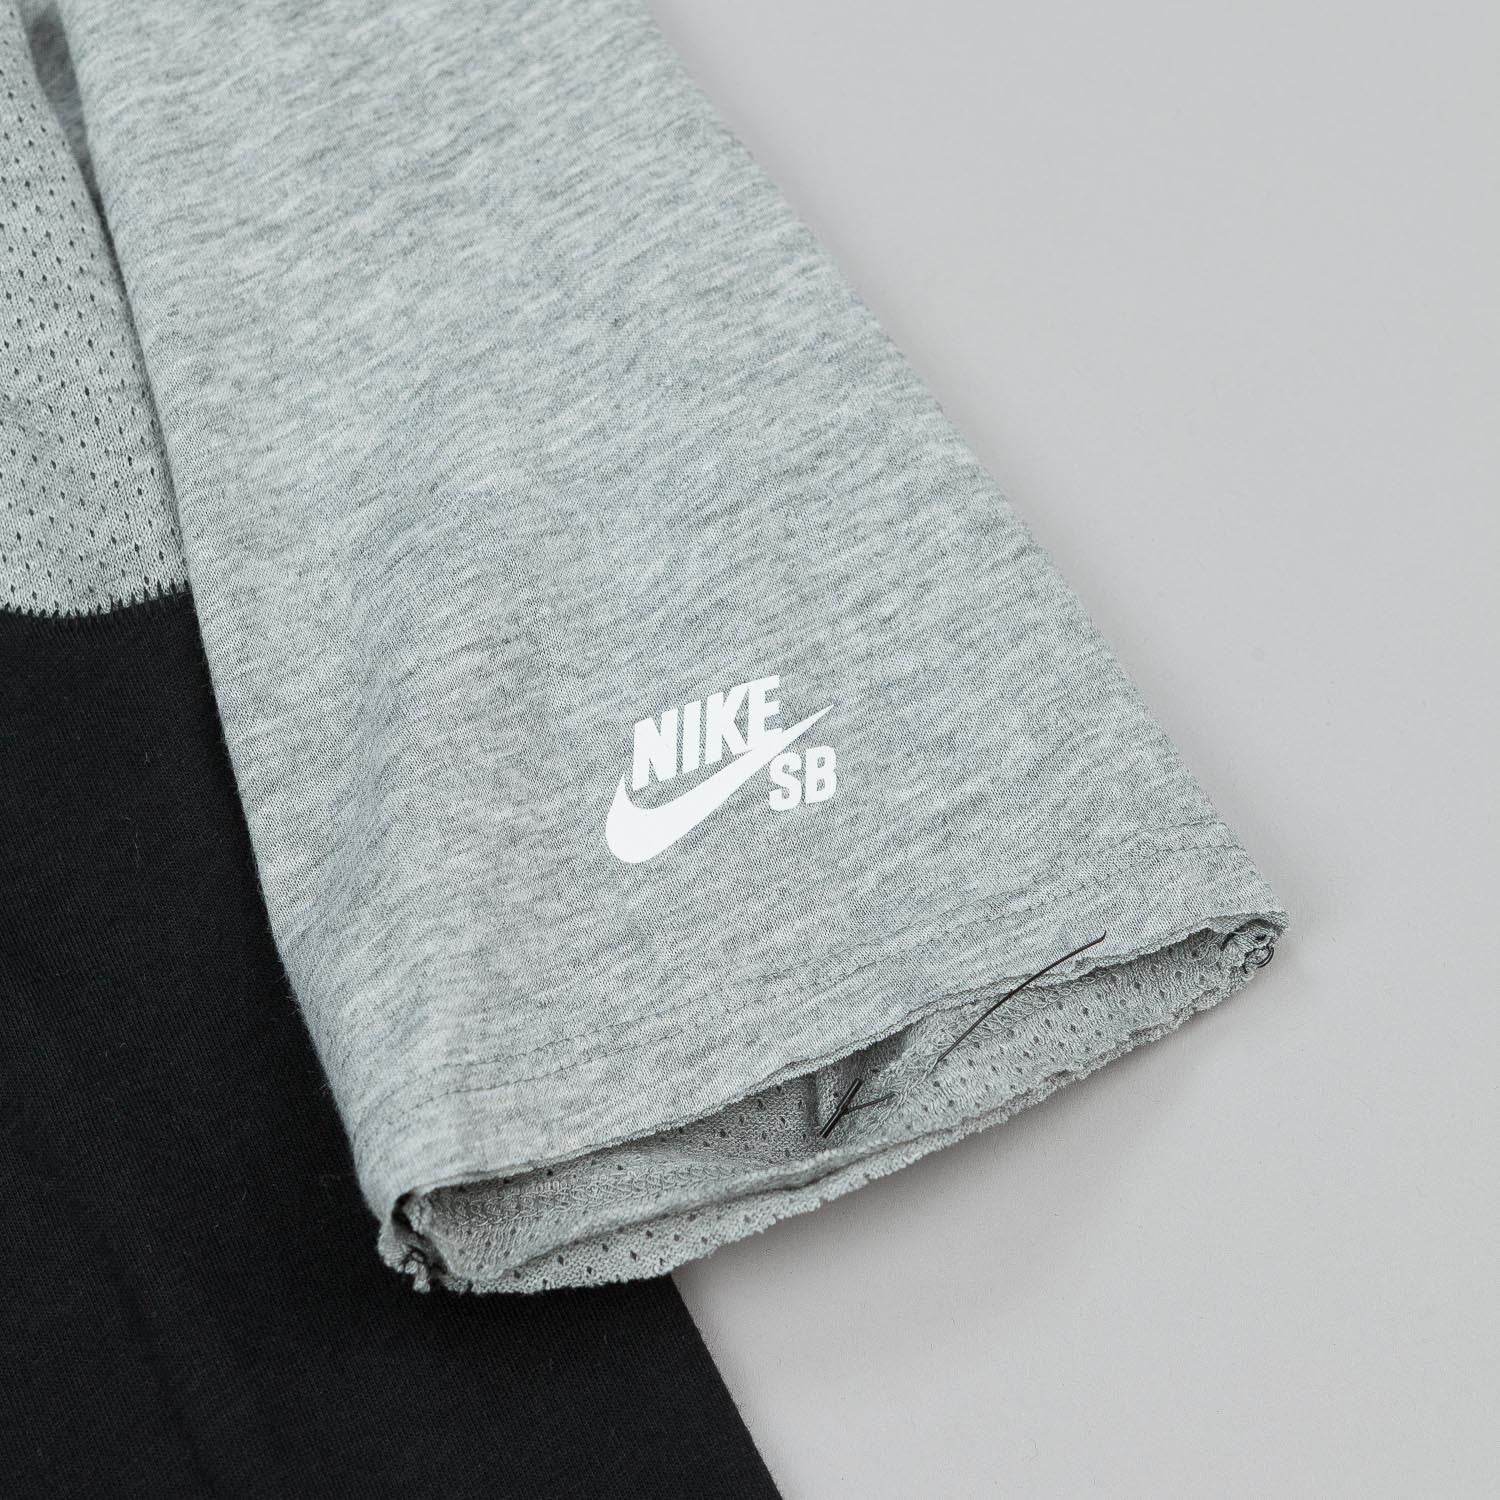 Nike SB Skyline DFC 3/4 Sleeve Raglan T-Shirt - Black / Grey Heather